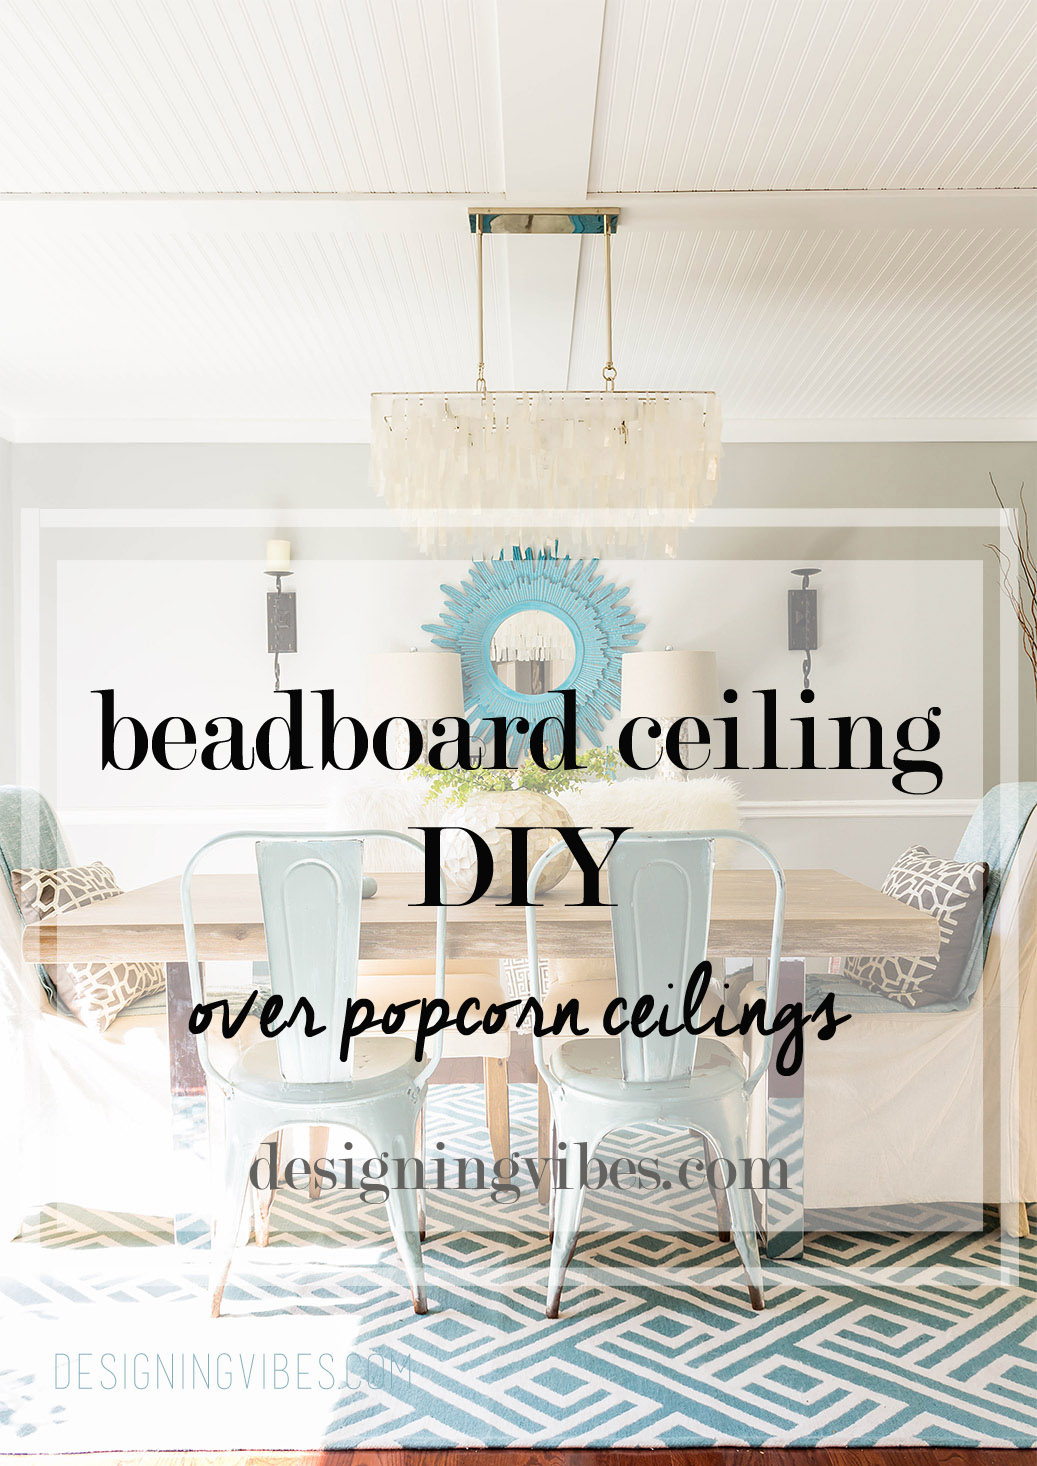 Beadboard Plank Ceiling Over Popcorn Ceiling Diy